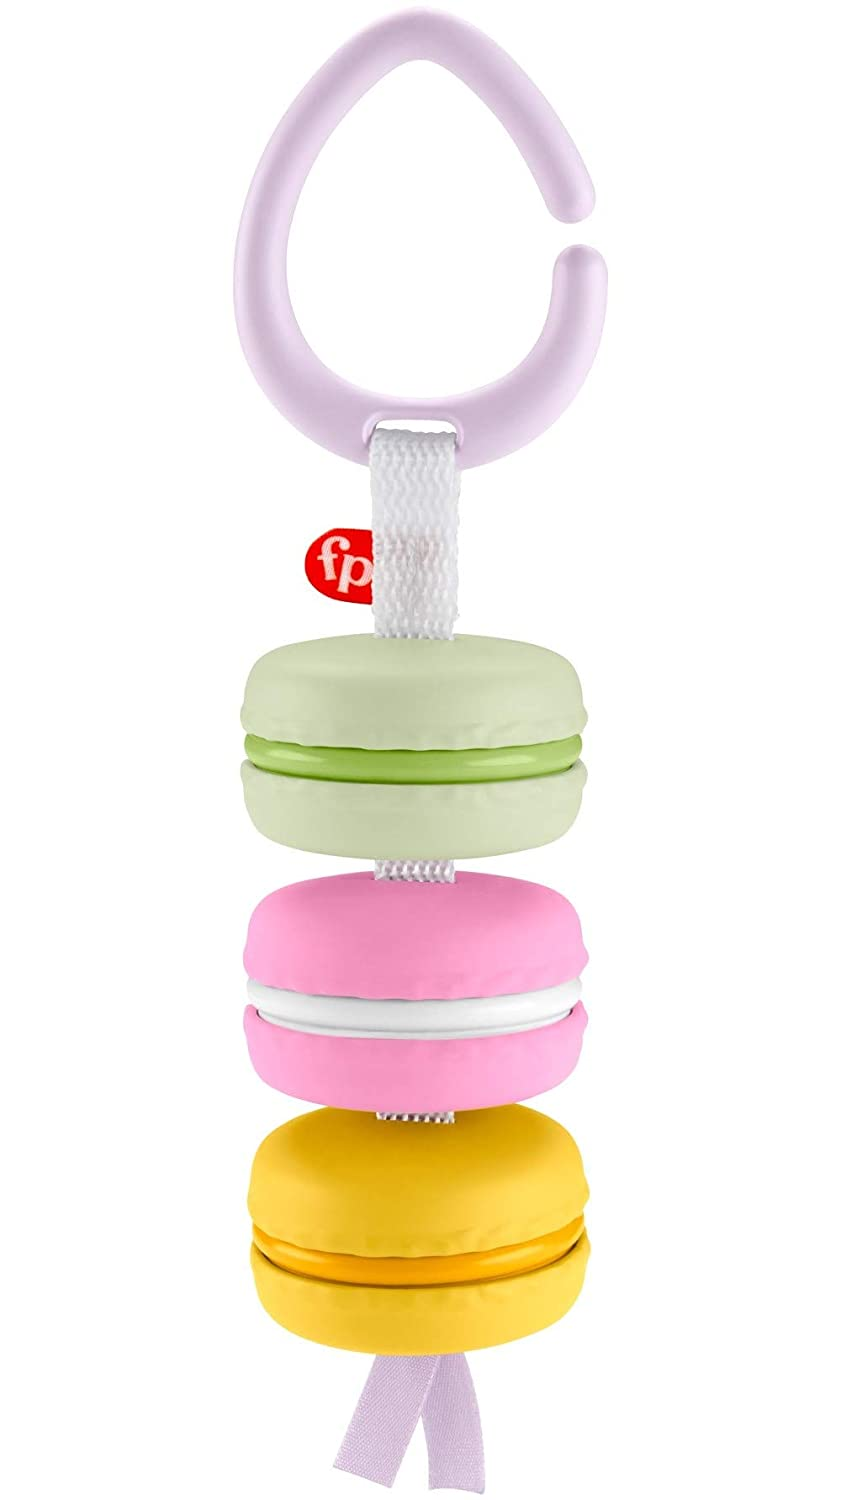 Fisher-Price My First Macaron, Pretend Food Take-Along Baby Rattle Activity Toy